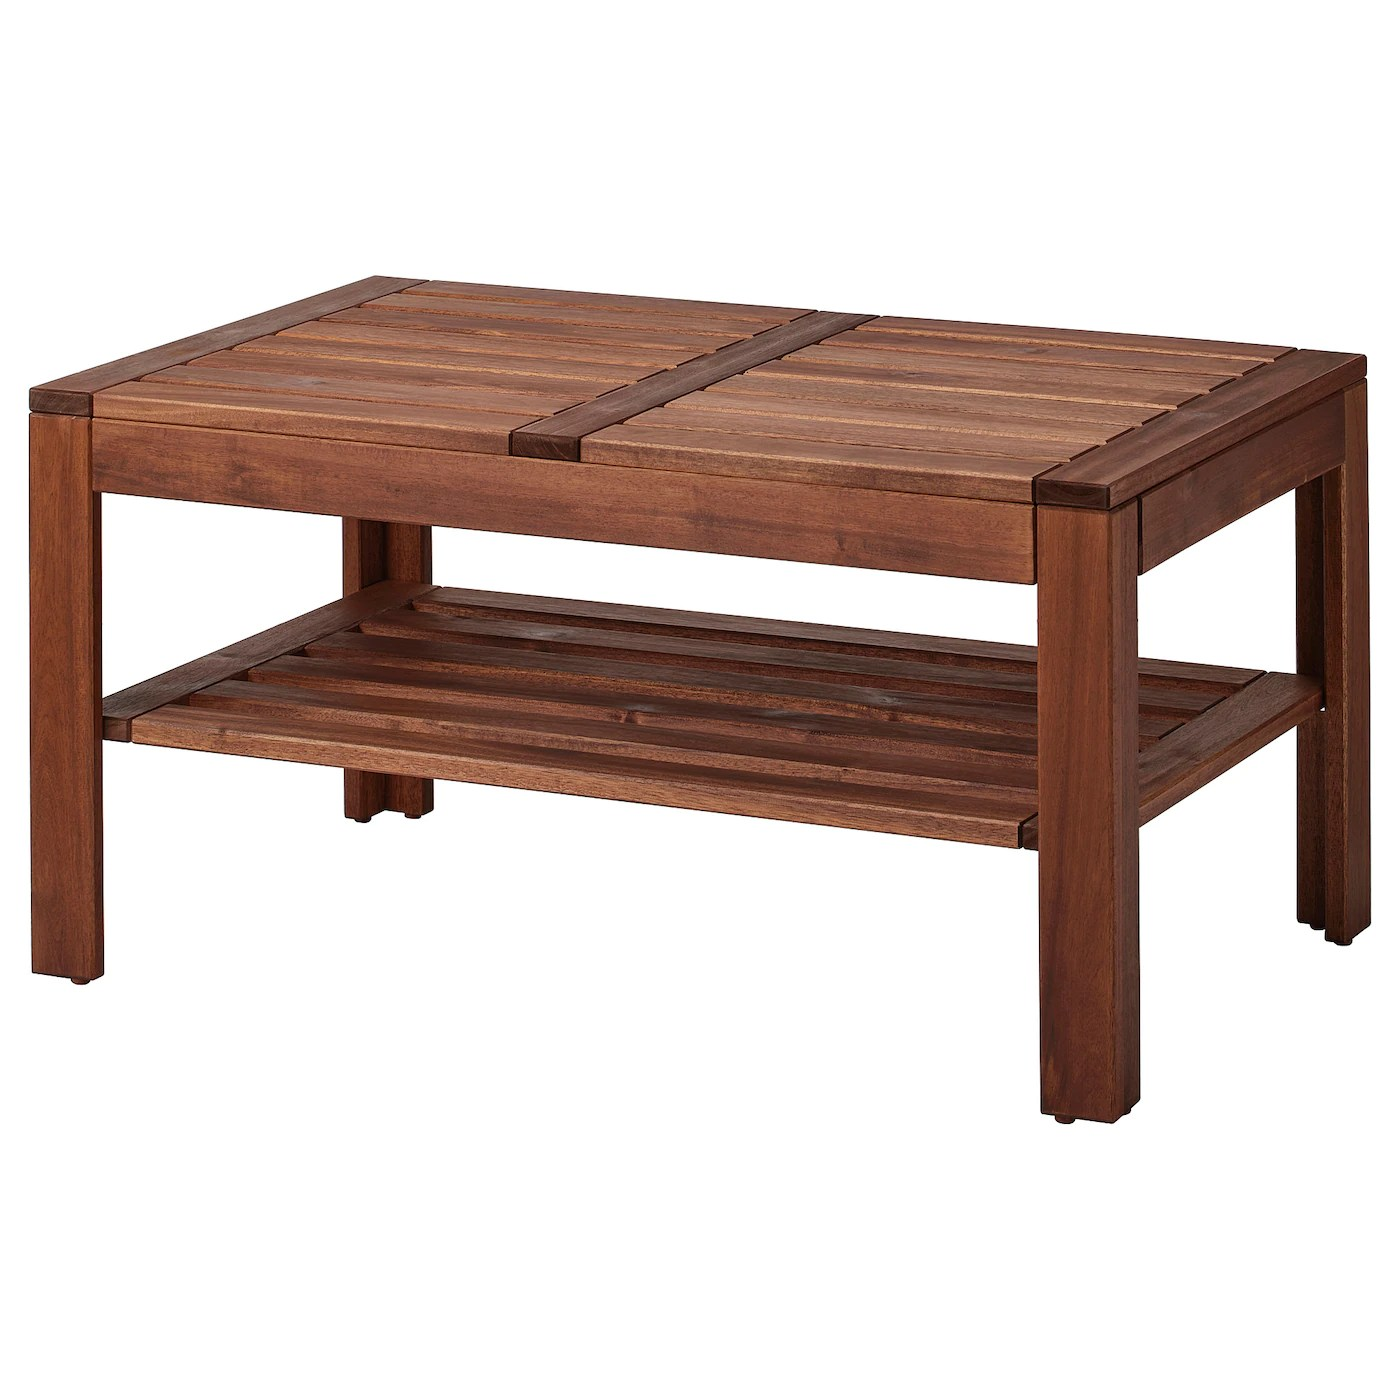 applaro coffee table outdoor brown stained 35 3 8x21 5 8